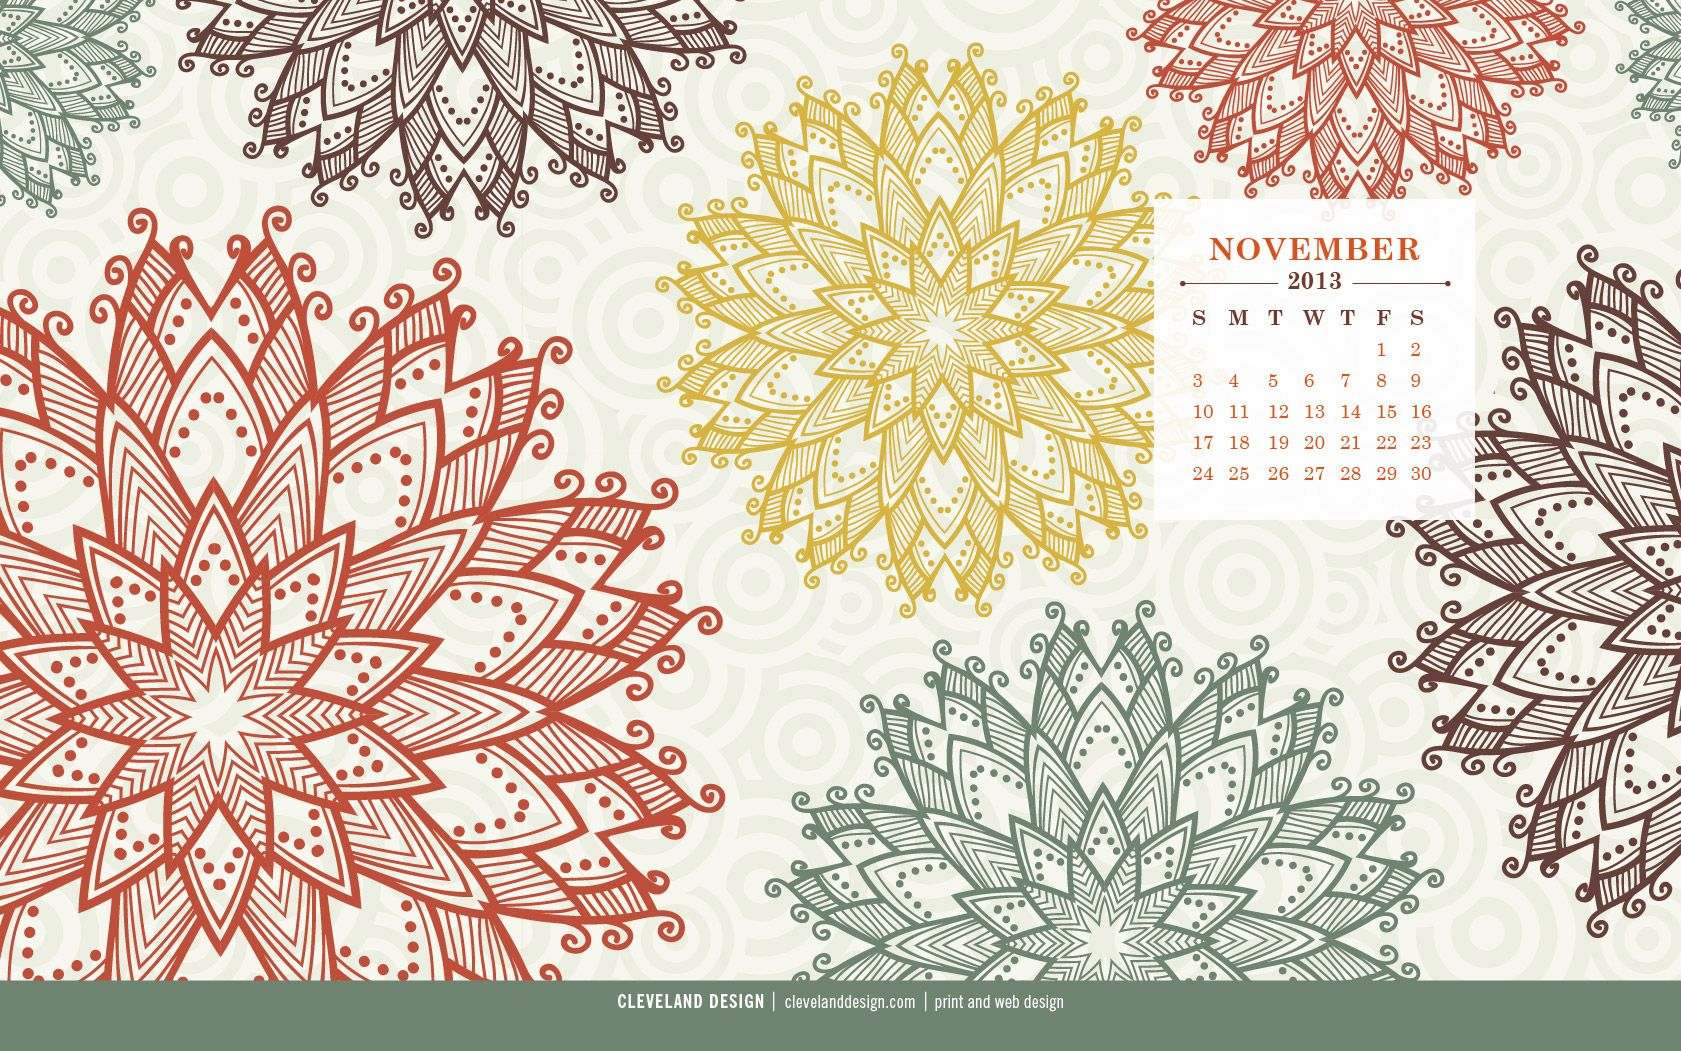 November Calendar Design : November by cleveland design calendar wallpaper